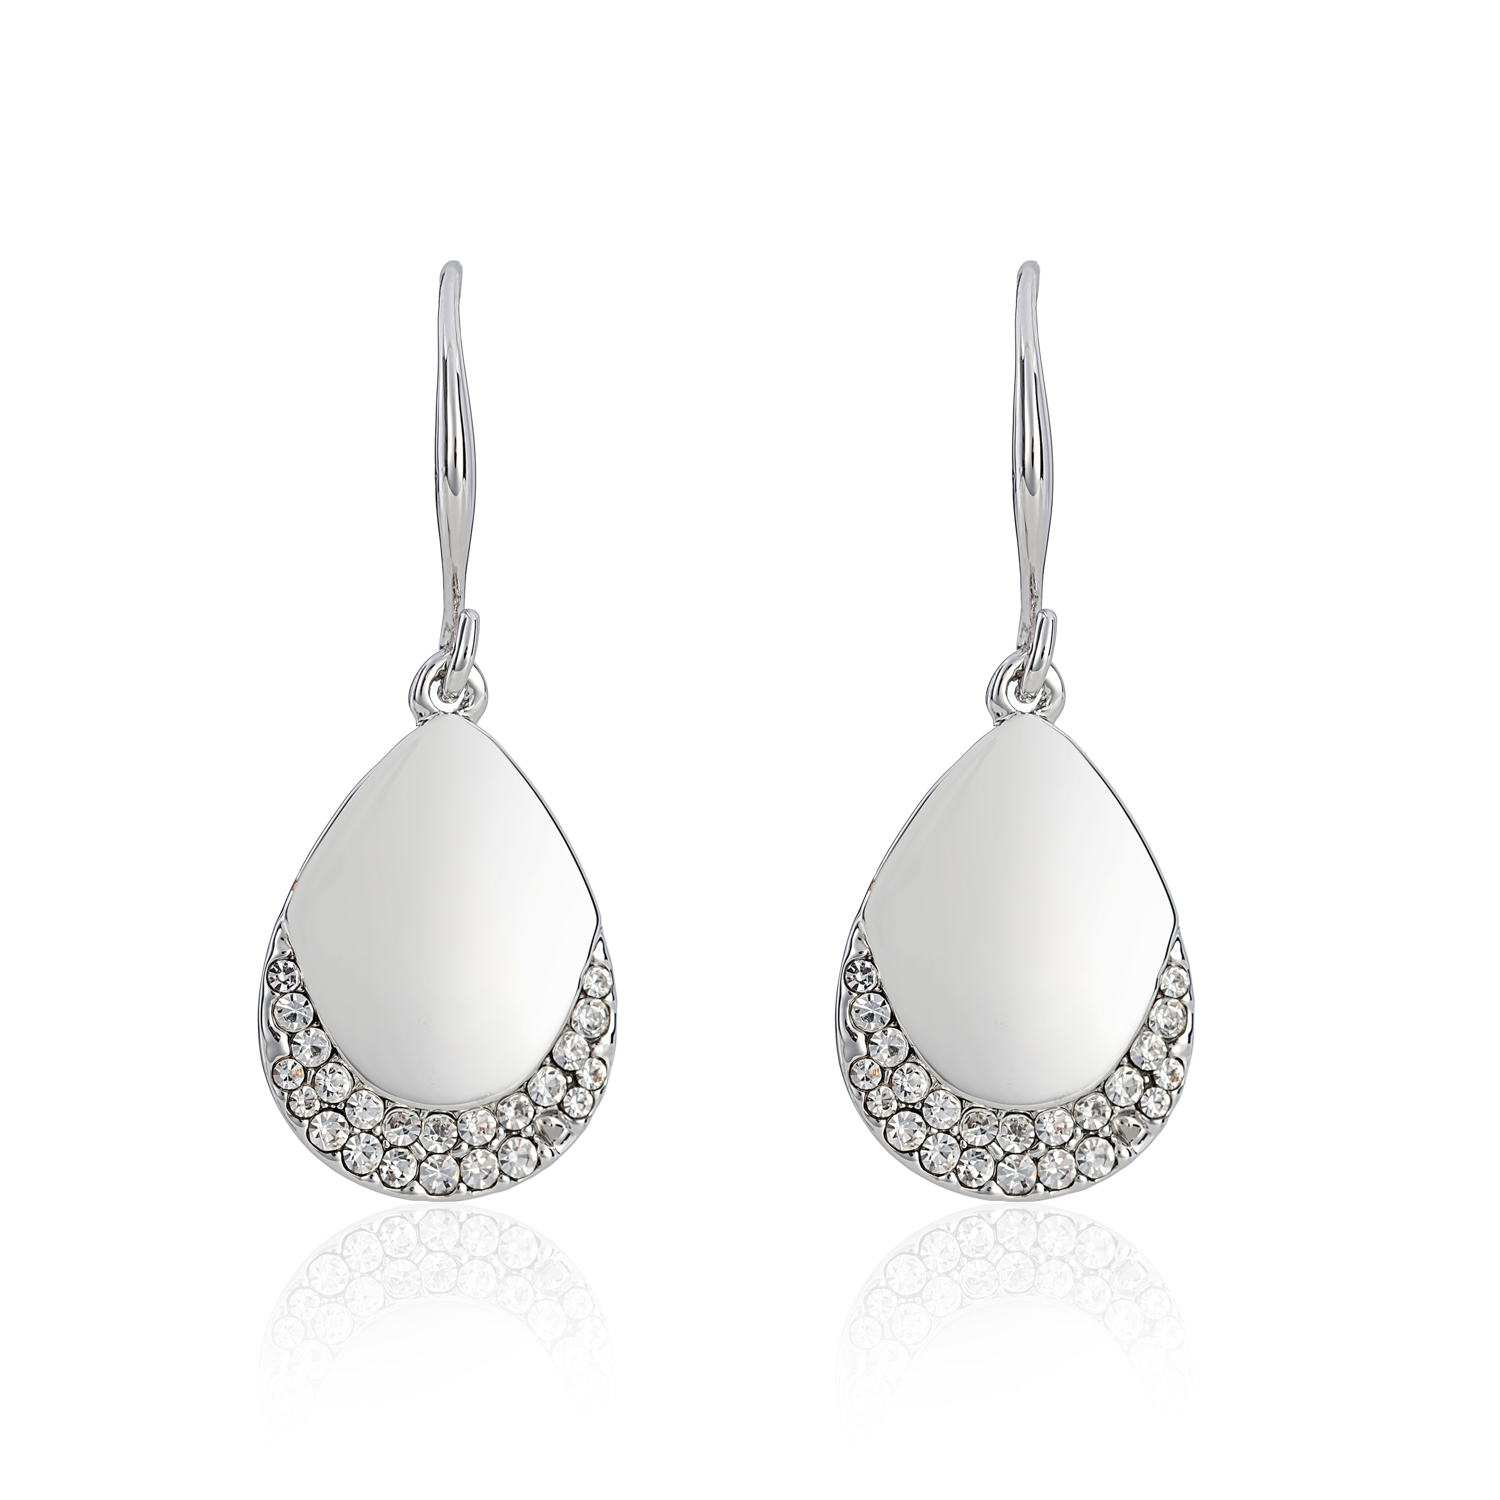 Cameo Silver Teardrop Earrings